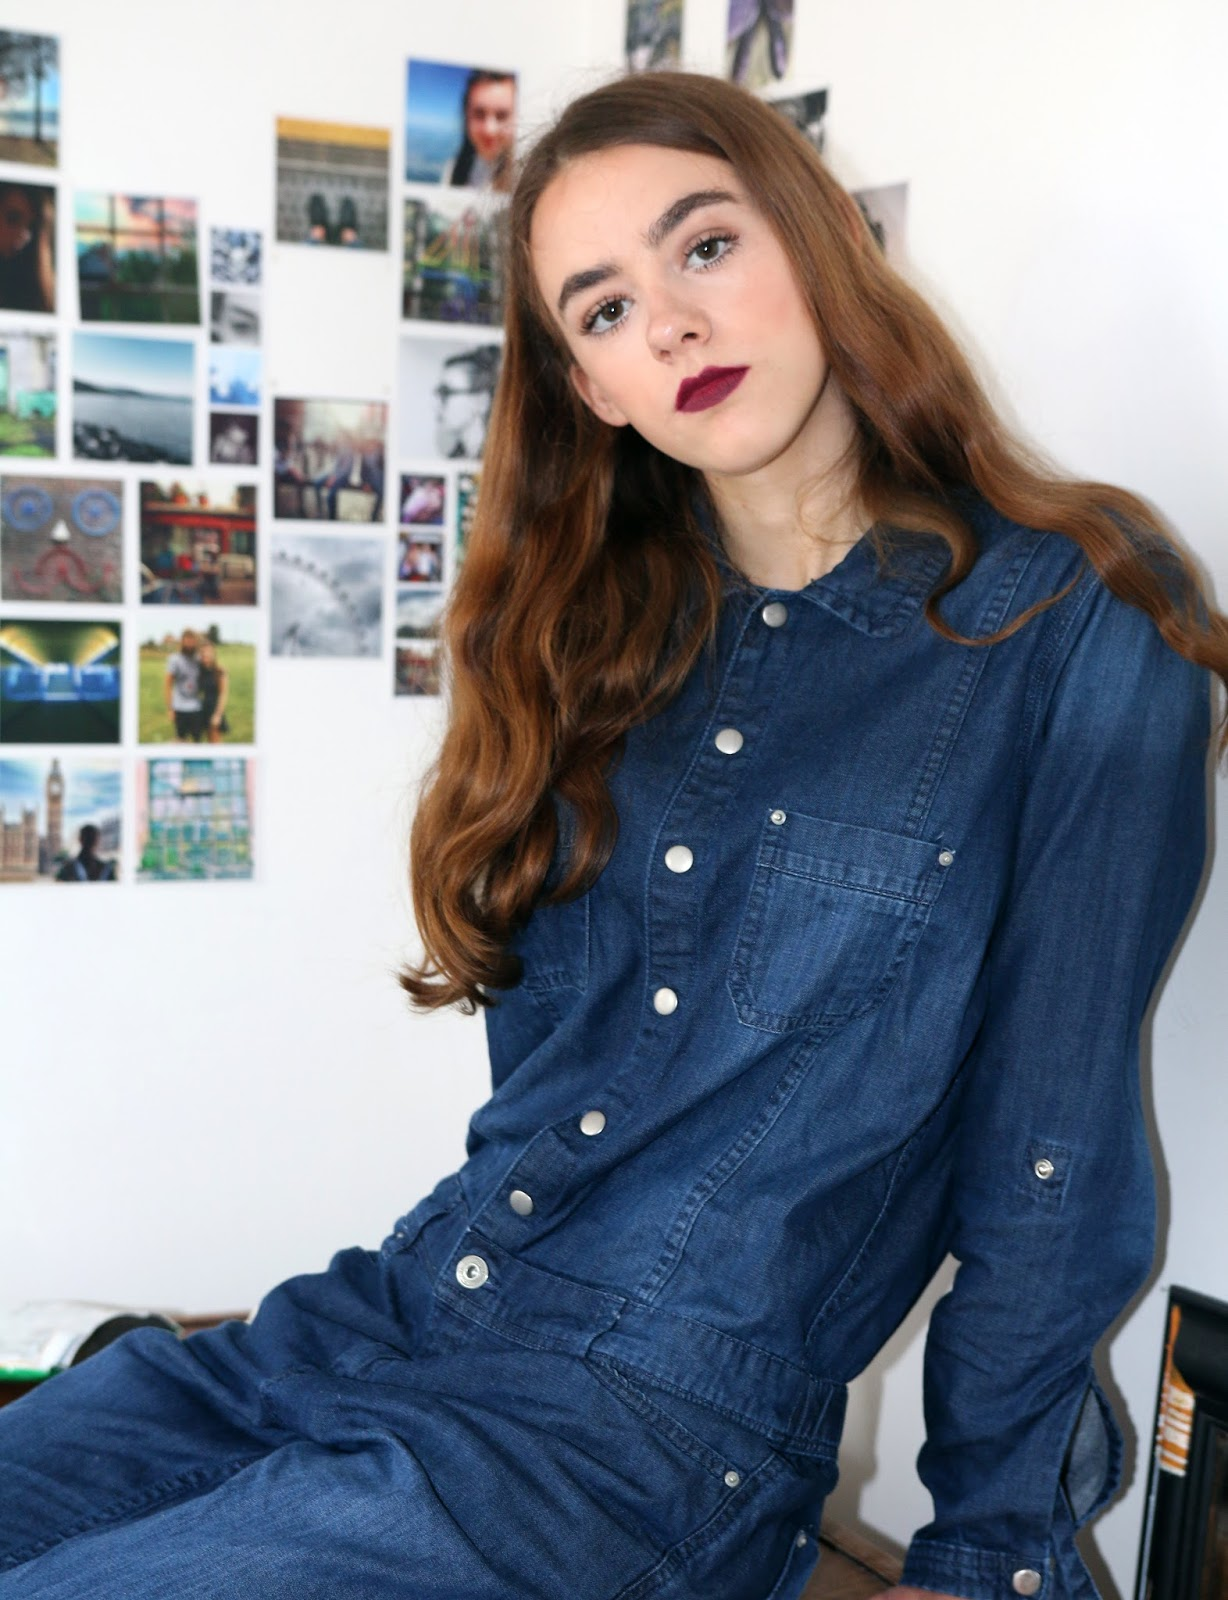 Alice in Wonderland, Amelia, Mandeville, Jumpsuit, Mandeville Sisters, Blog, funny, fashion, comedy, jumpsuit, boiler suit, OOTD, Blogger, comment, witty, author, writing